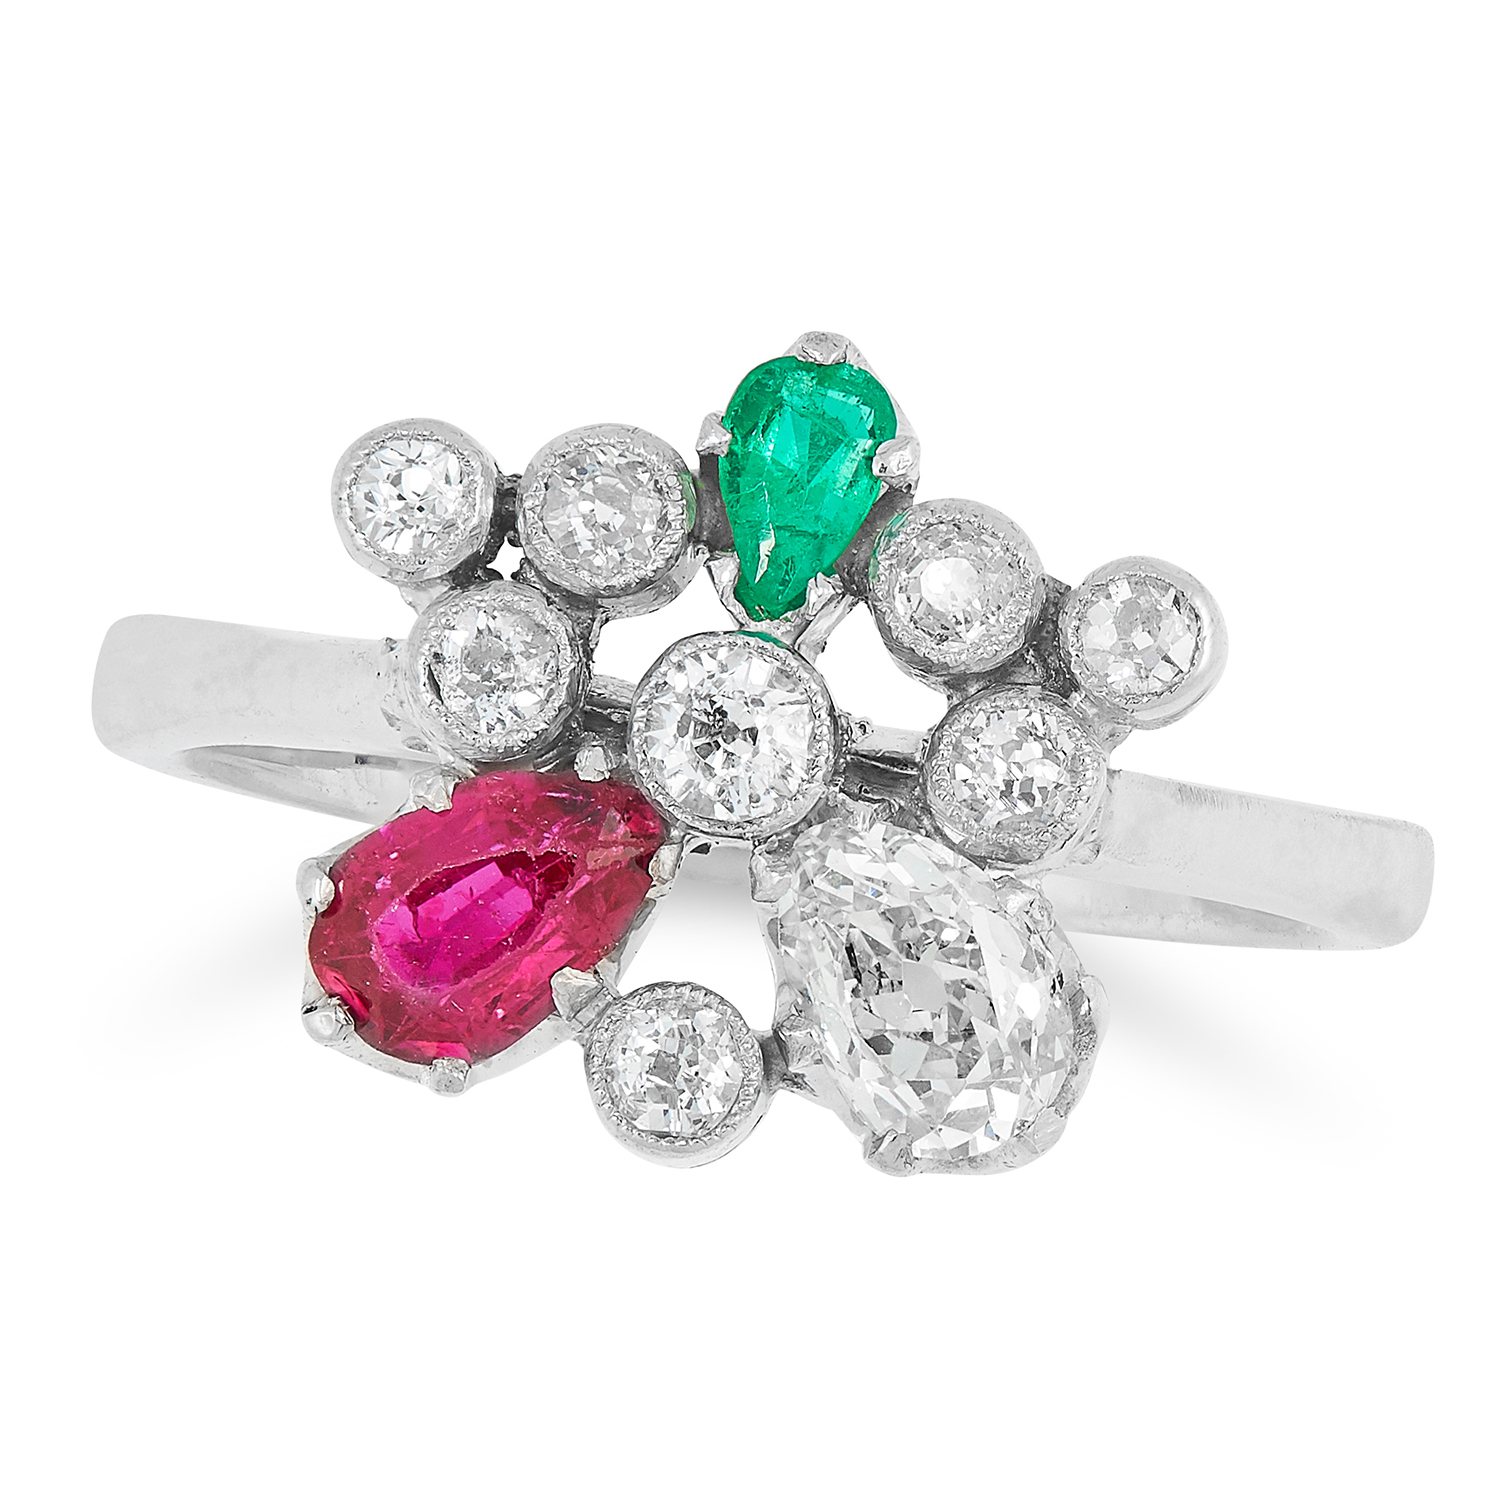 Los 1 - A DIAMOND, RUBY AND EMERALD RING in cluster form set with round cut diamonds and a pear cut ruby,